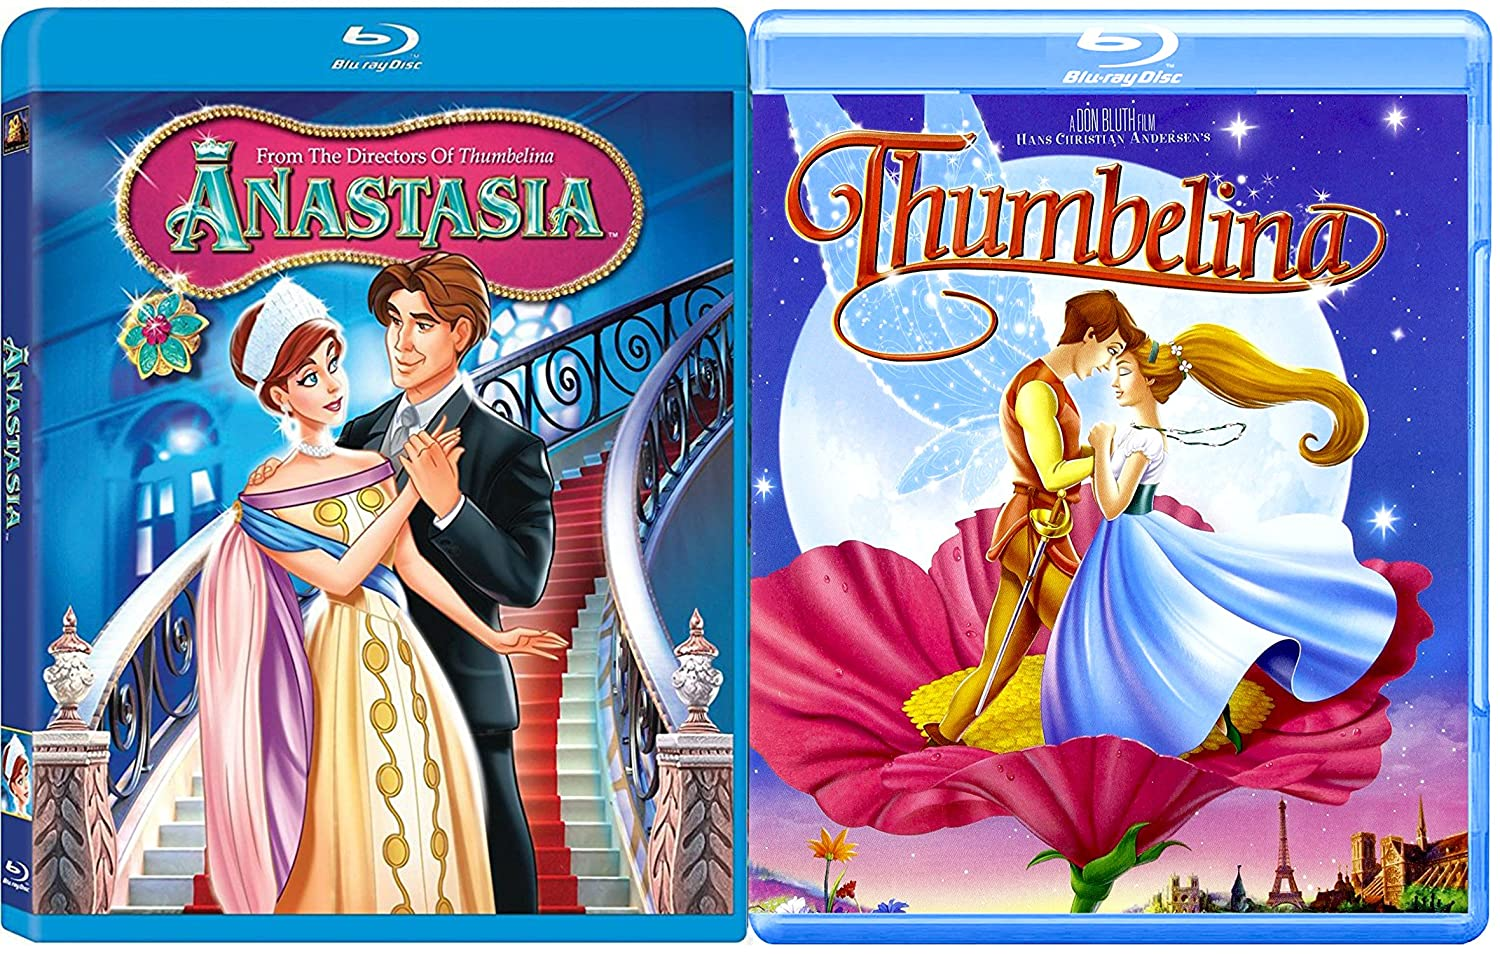 amazon com thumbelina and anastasia blu ray animated movie set barbara cook june foray will ryan jodi benson gino conforti meg ryan john cusack christopher lloyd kelsey grammer hank azaria don bluth gary thumbelina and anastasia blu ray animated movie set